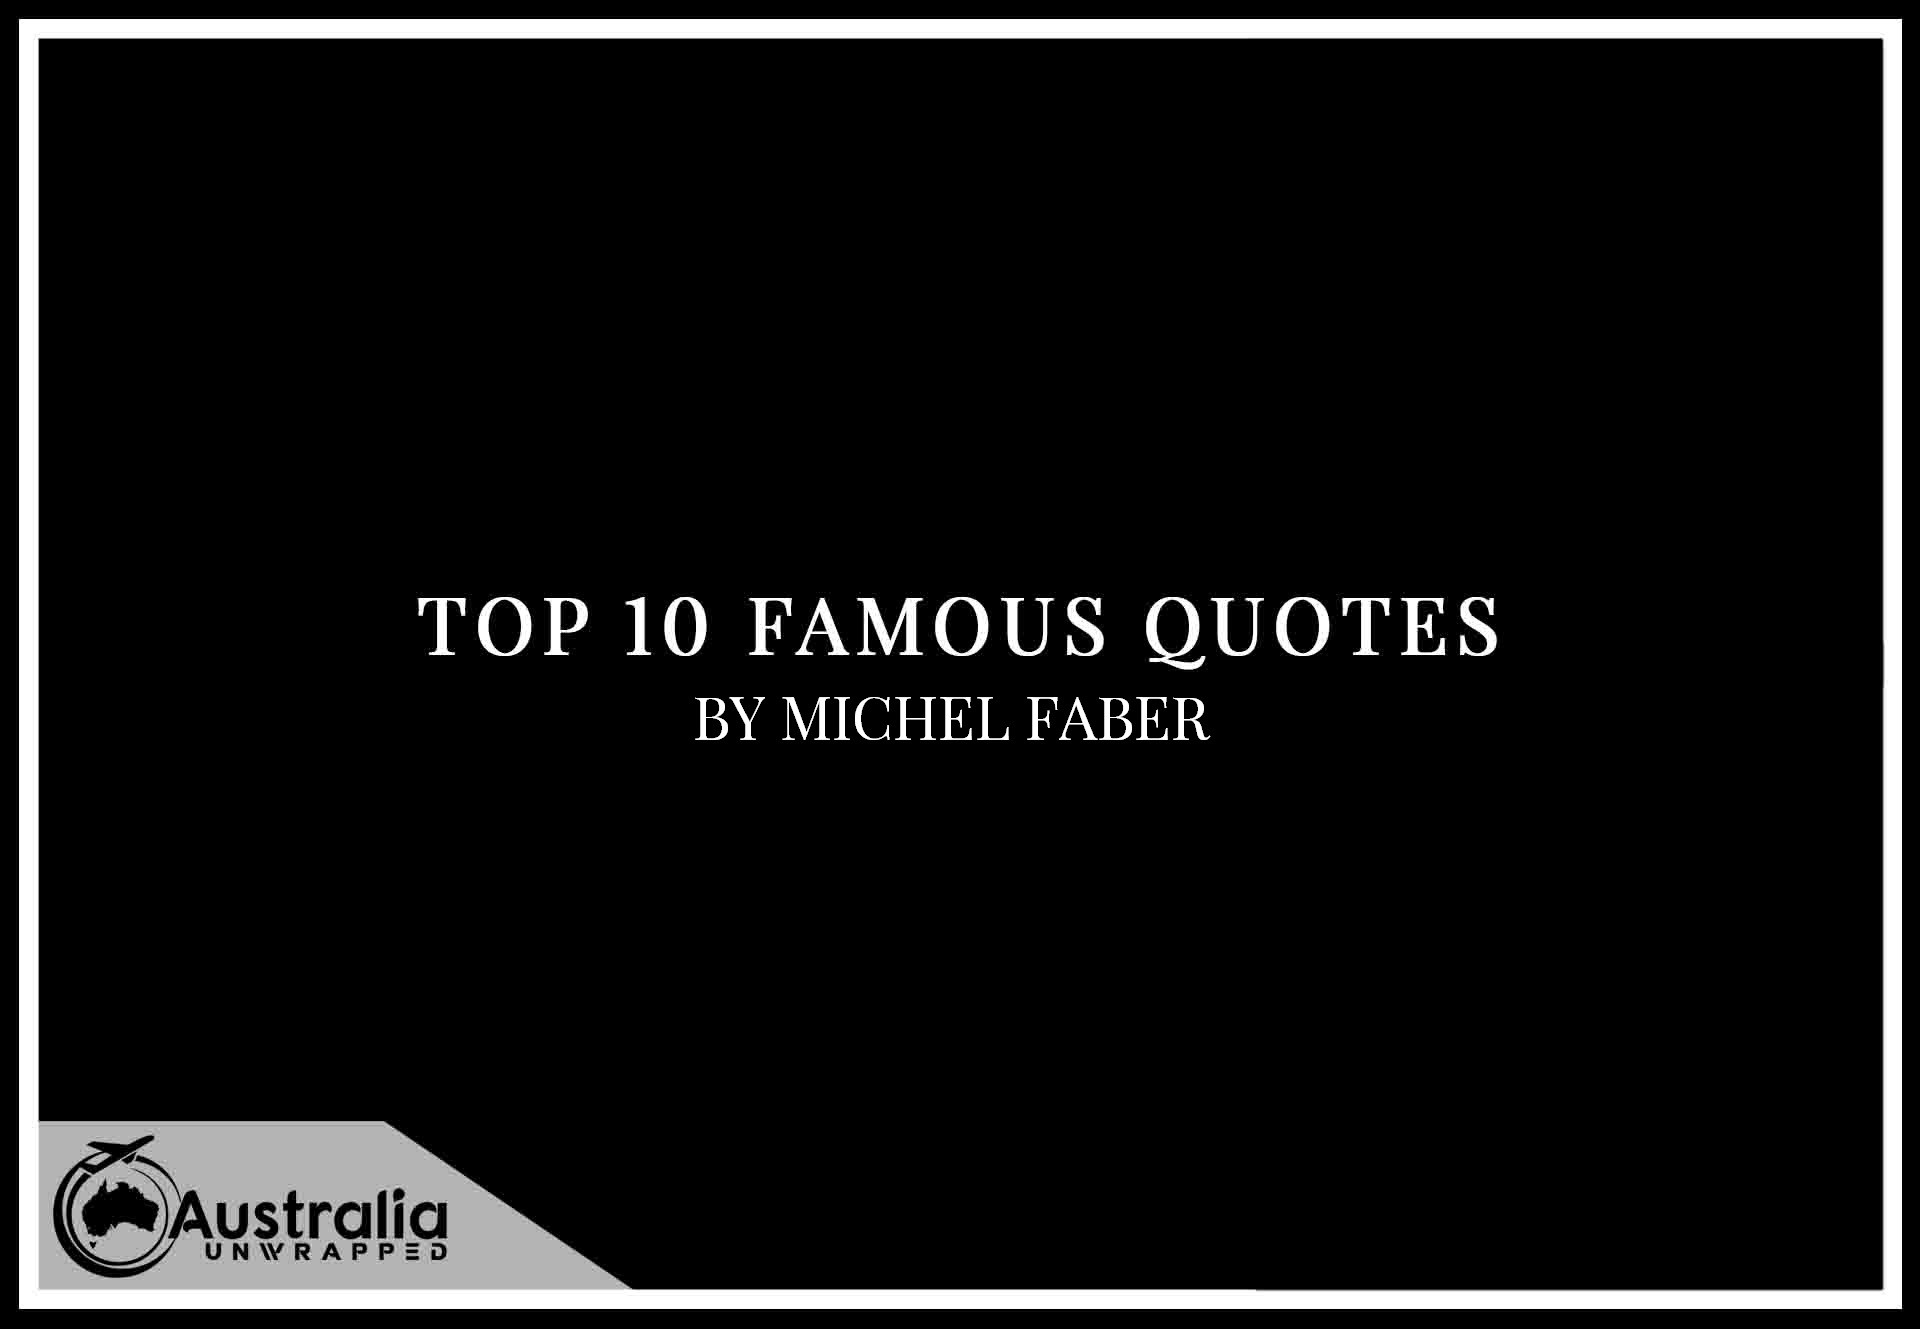 Top 10 Famous Quotes by Author Michel Faber